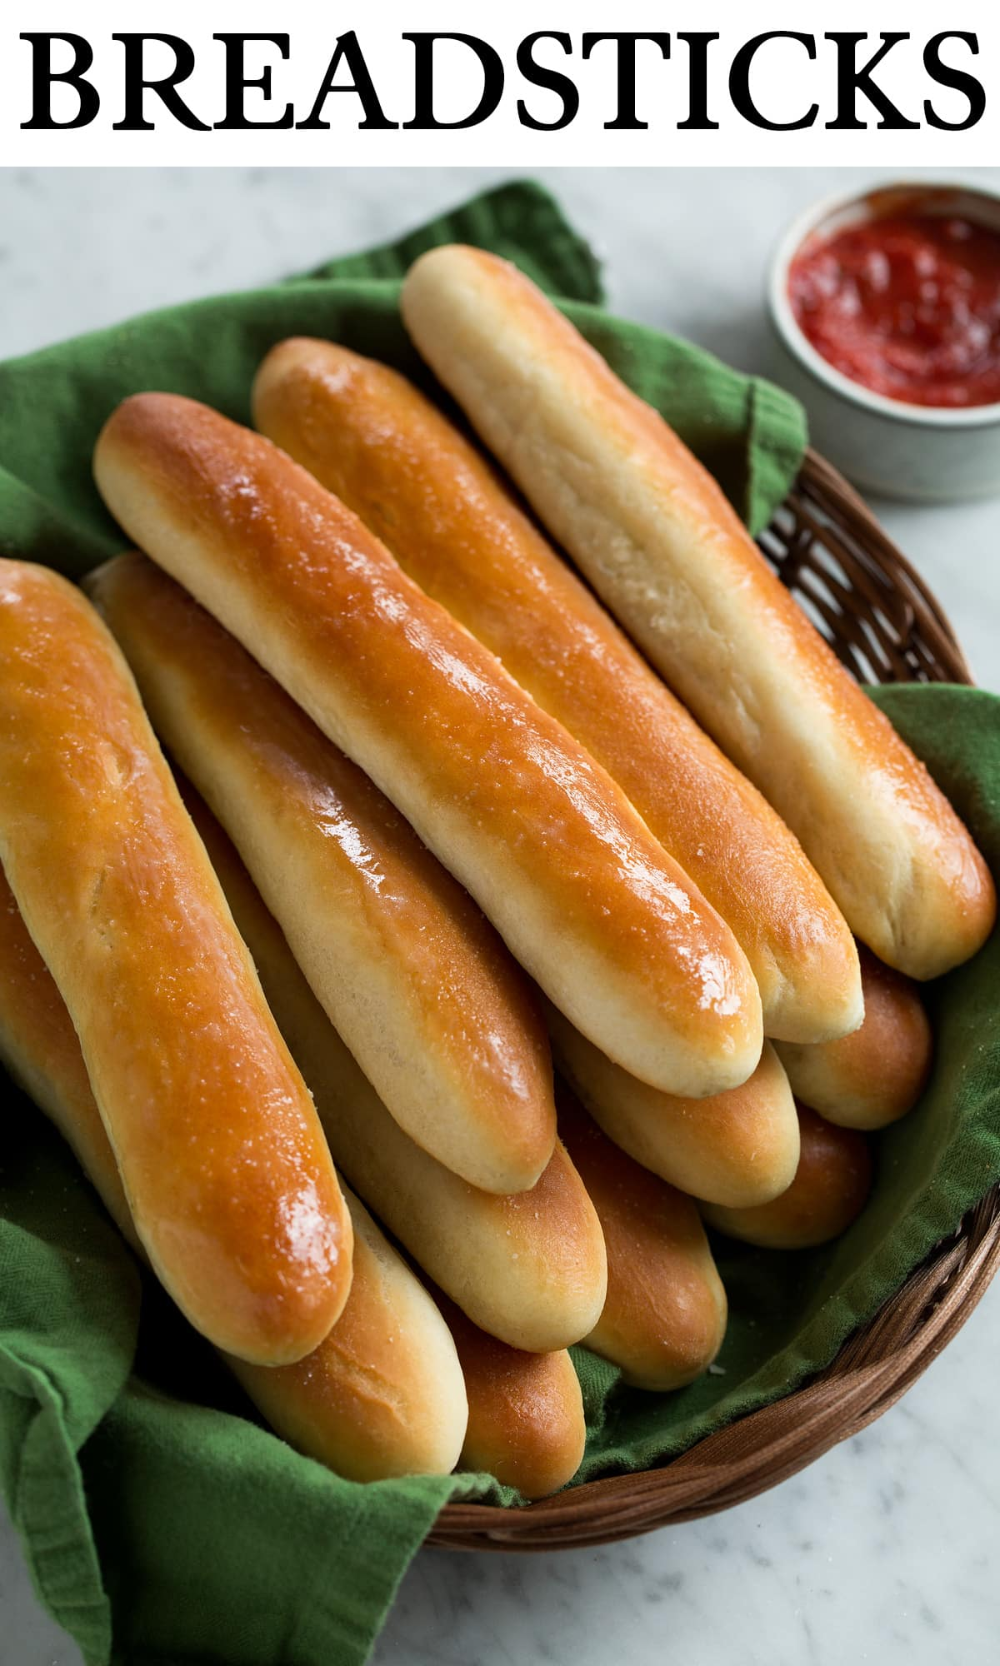 Best Breadsticks Recipe These always turn out perfectly